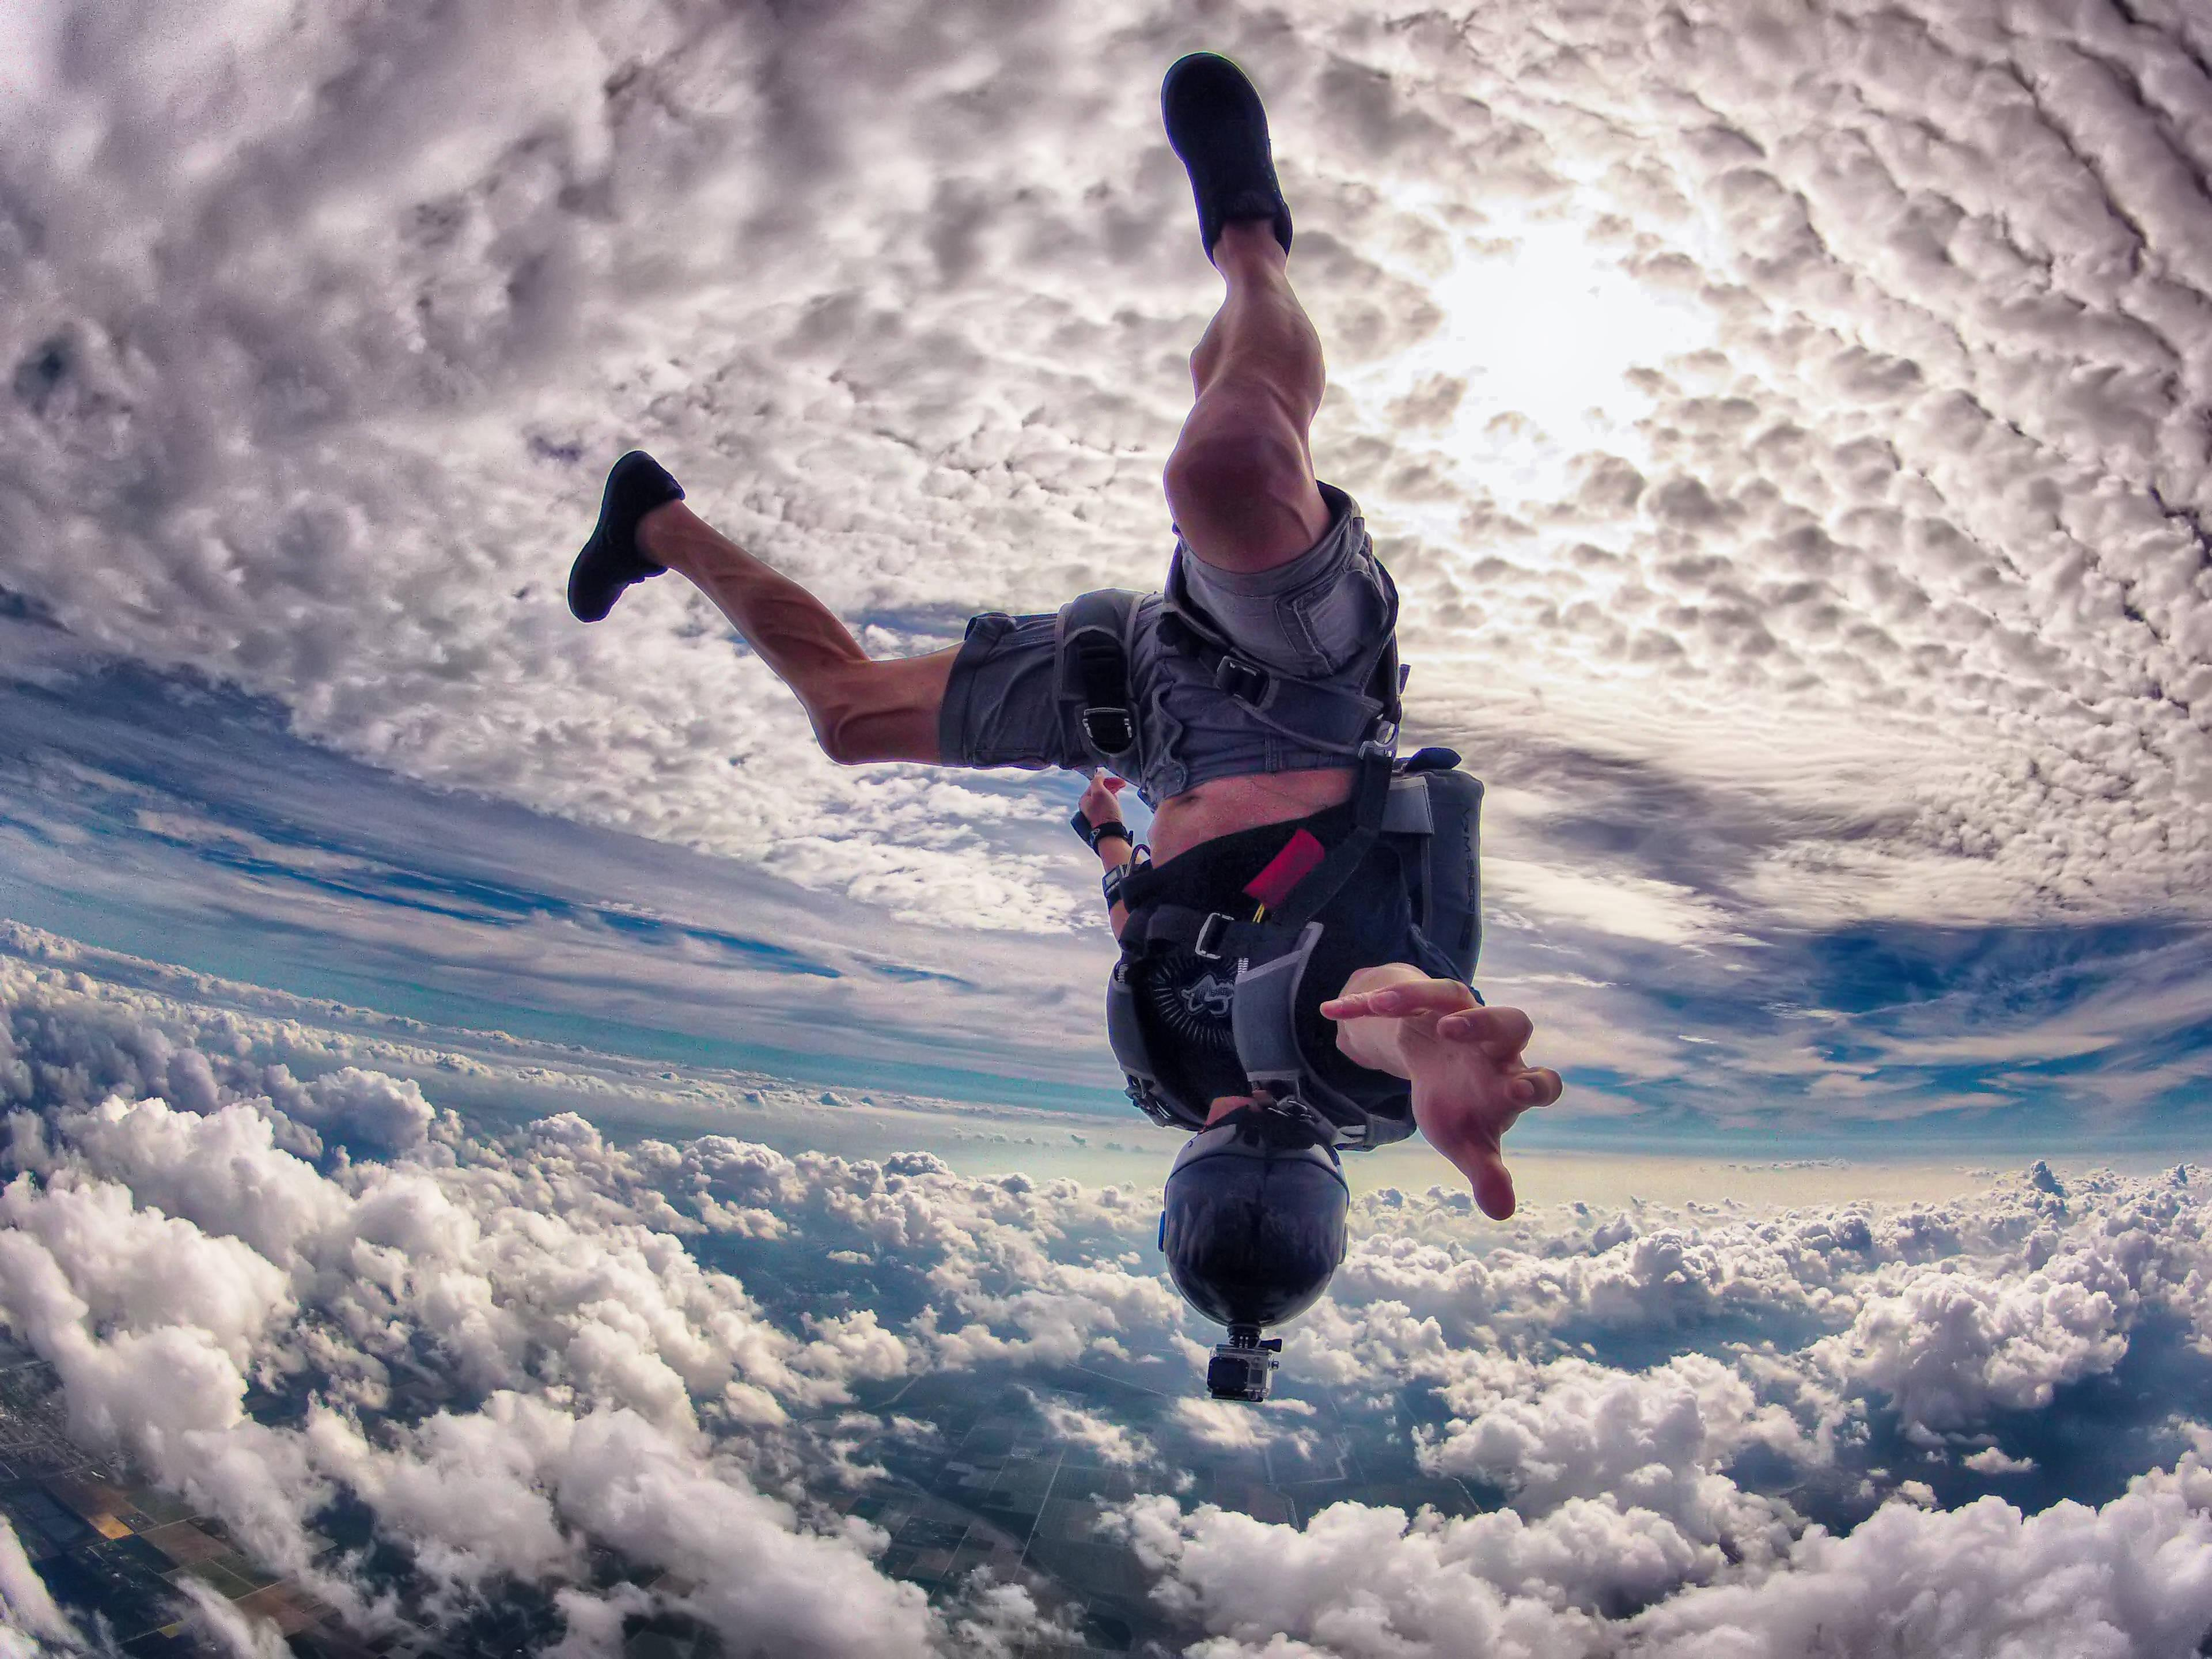 64 Skydiving HD Wallpapers | Backgrounds - Wallpaper Abyss